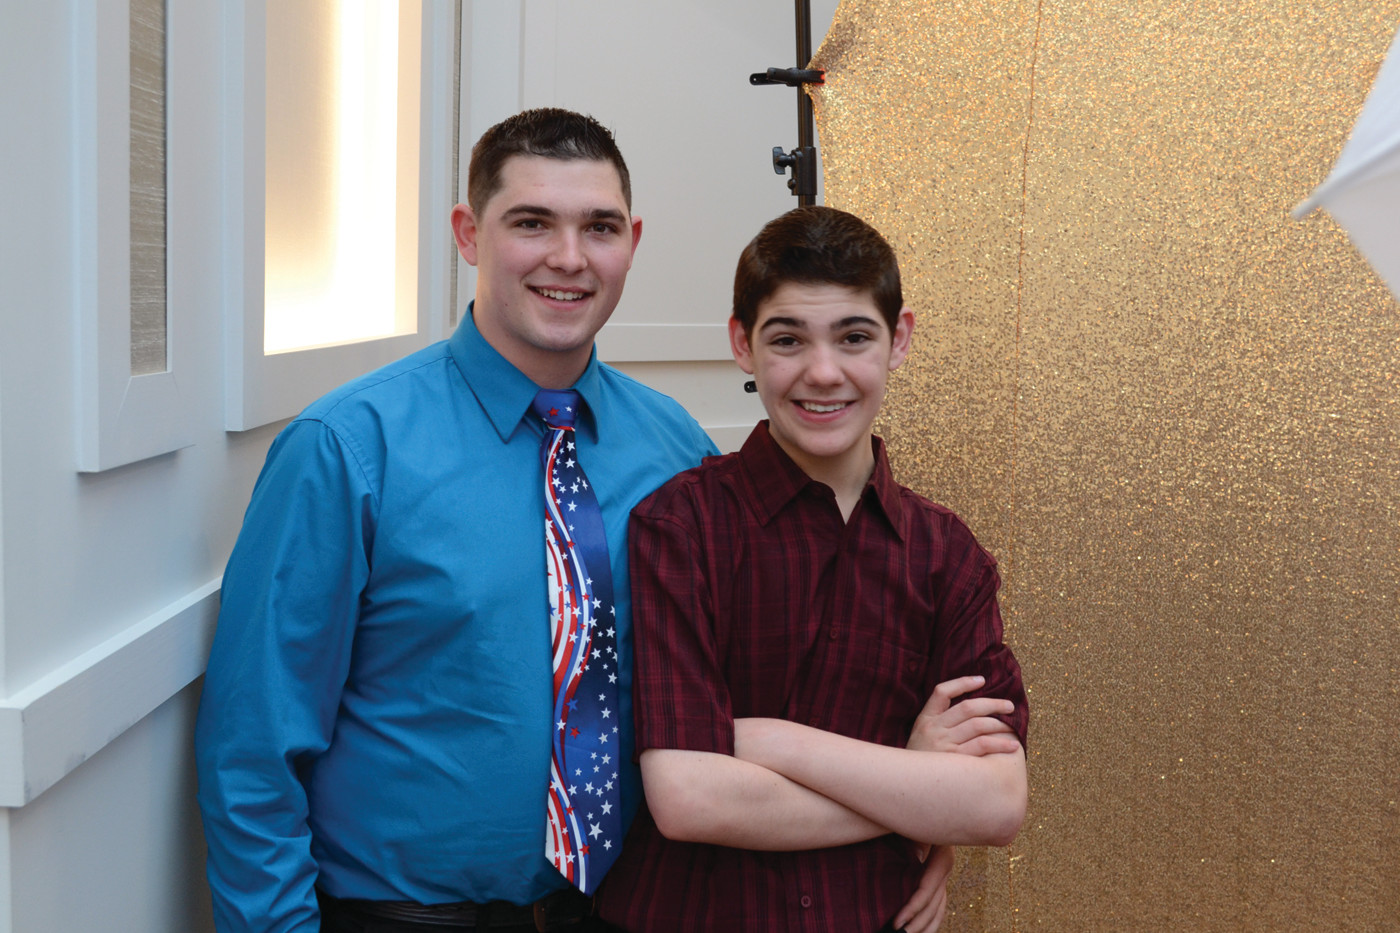 BROTHERLY LOVE: Aaron Barber (right) with Jonathan Barber at the Pathways Prom on Friday at the Crowne Plaza.